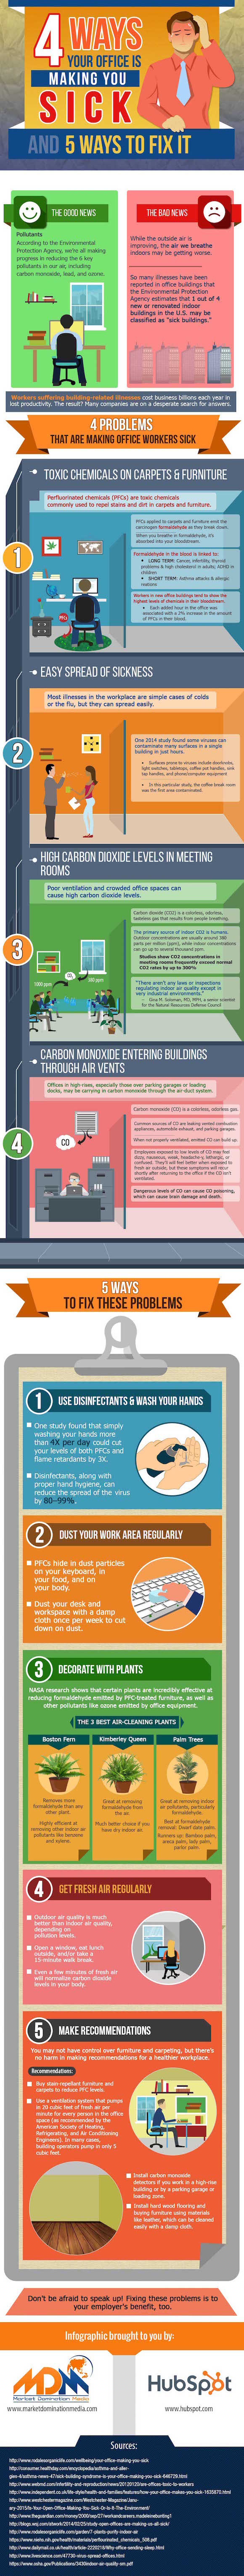 YourOfficeisMakingYouSickHeresHowtoFixItInfographic-thumb